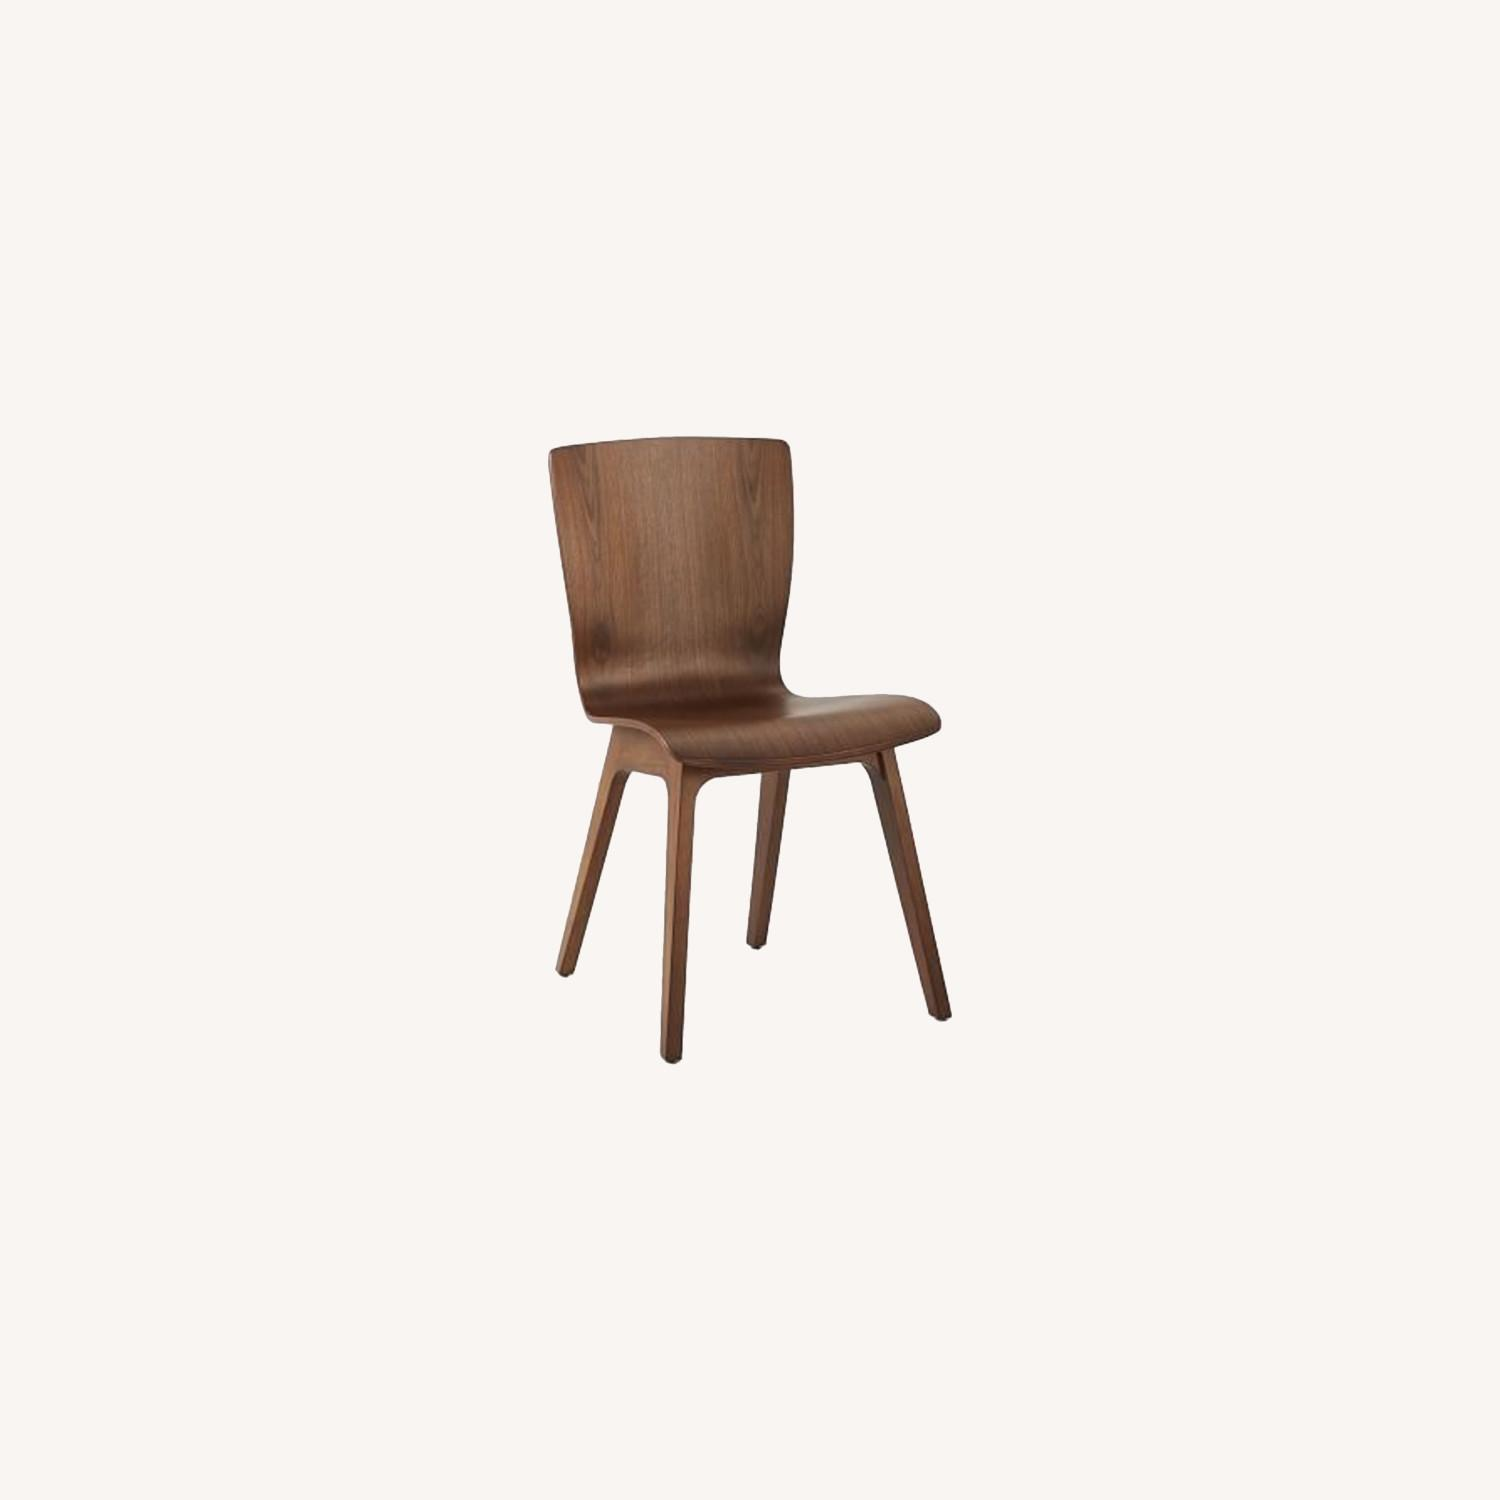 West Elm Crest Bentwood Dining Chair (Set of 2) - image-0